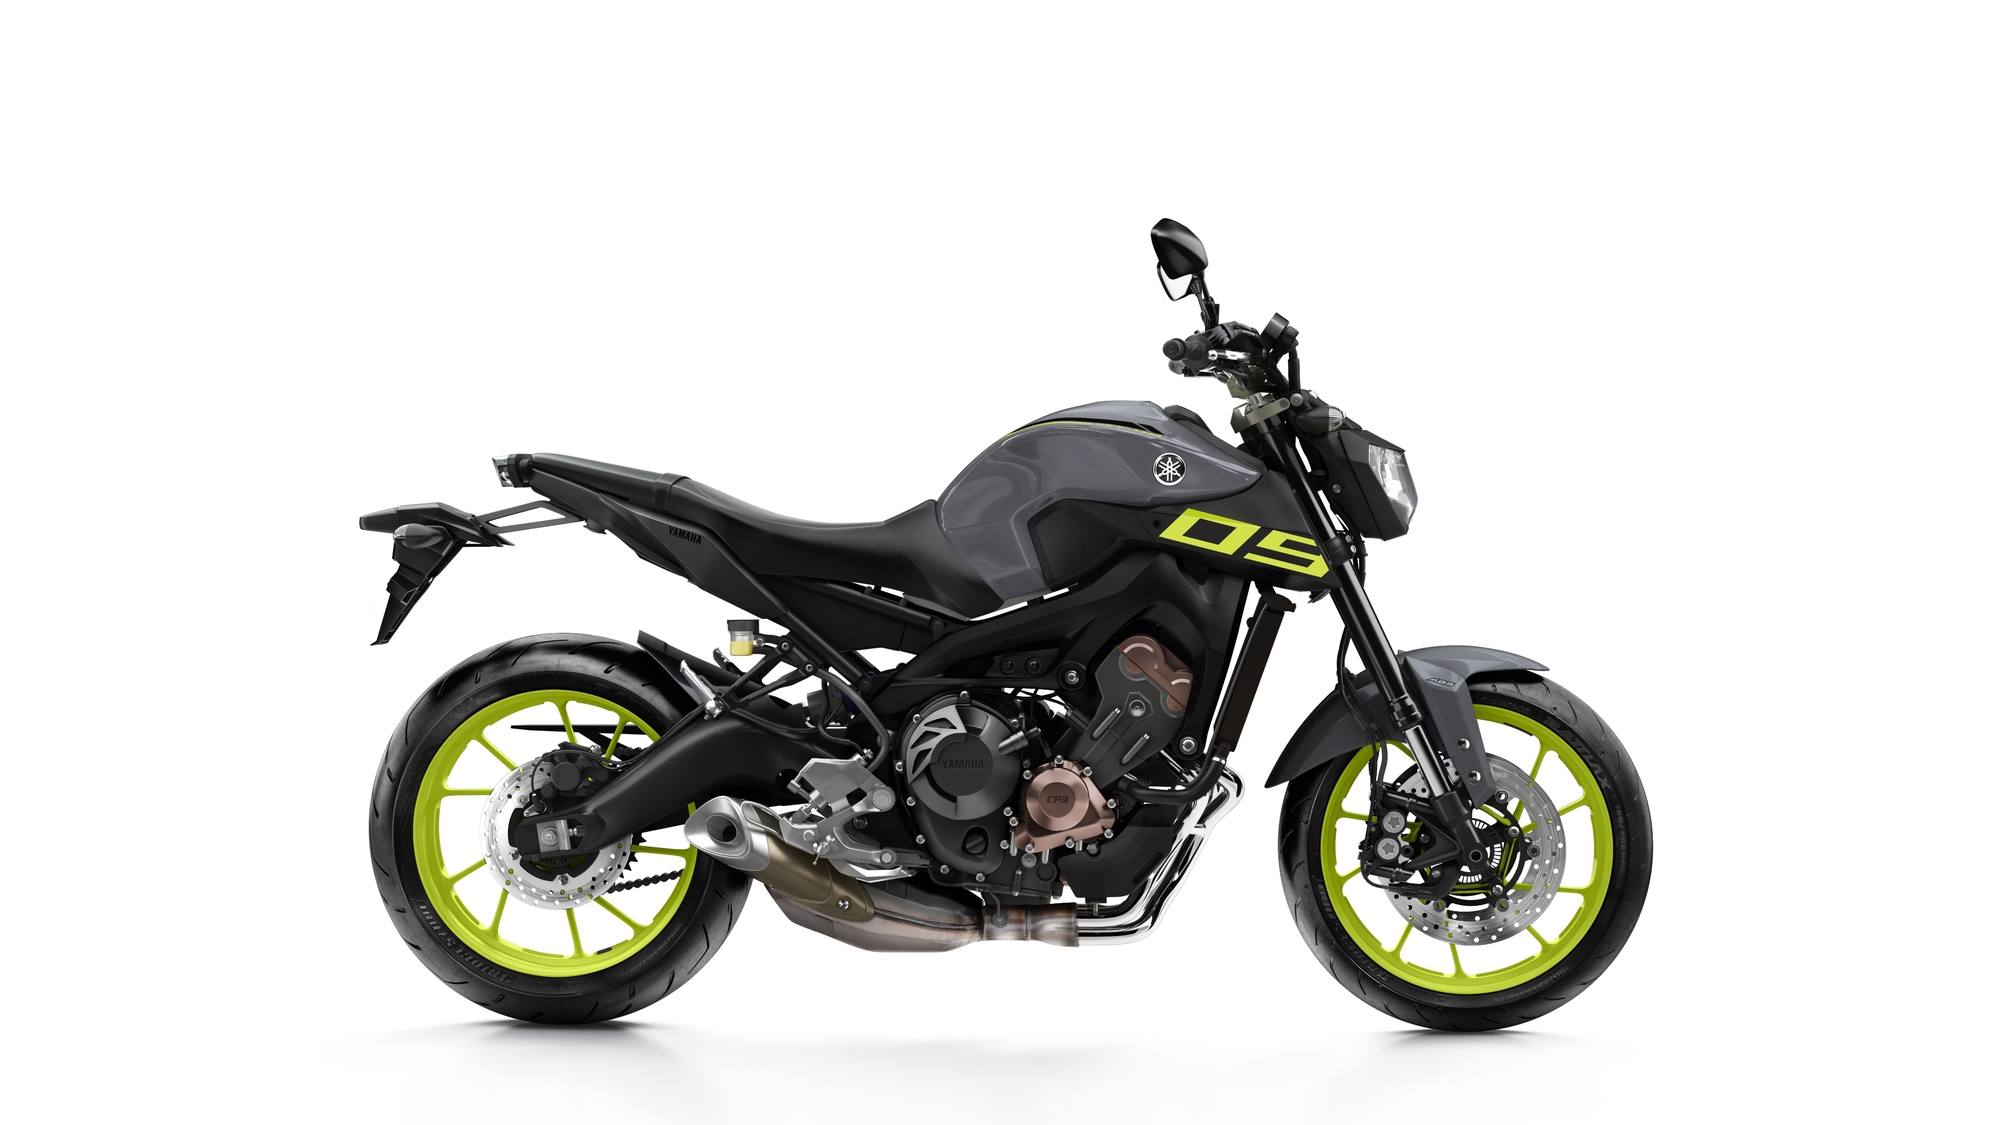 yamaha mt 09 ckd gets new colours bikesrepublic. Black Bedroom Furniture Sets. Home Design Ideas